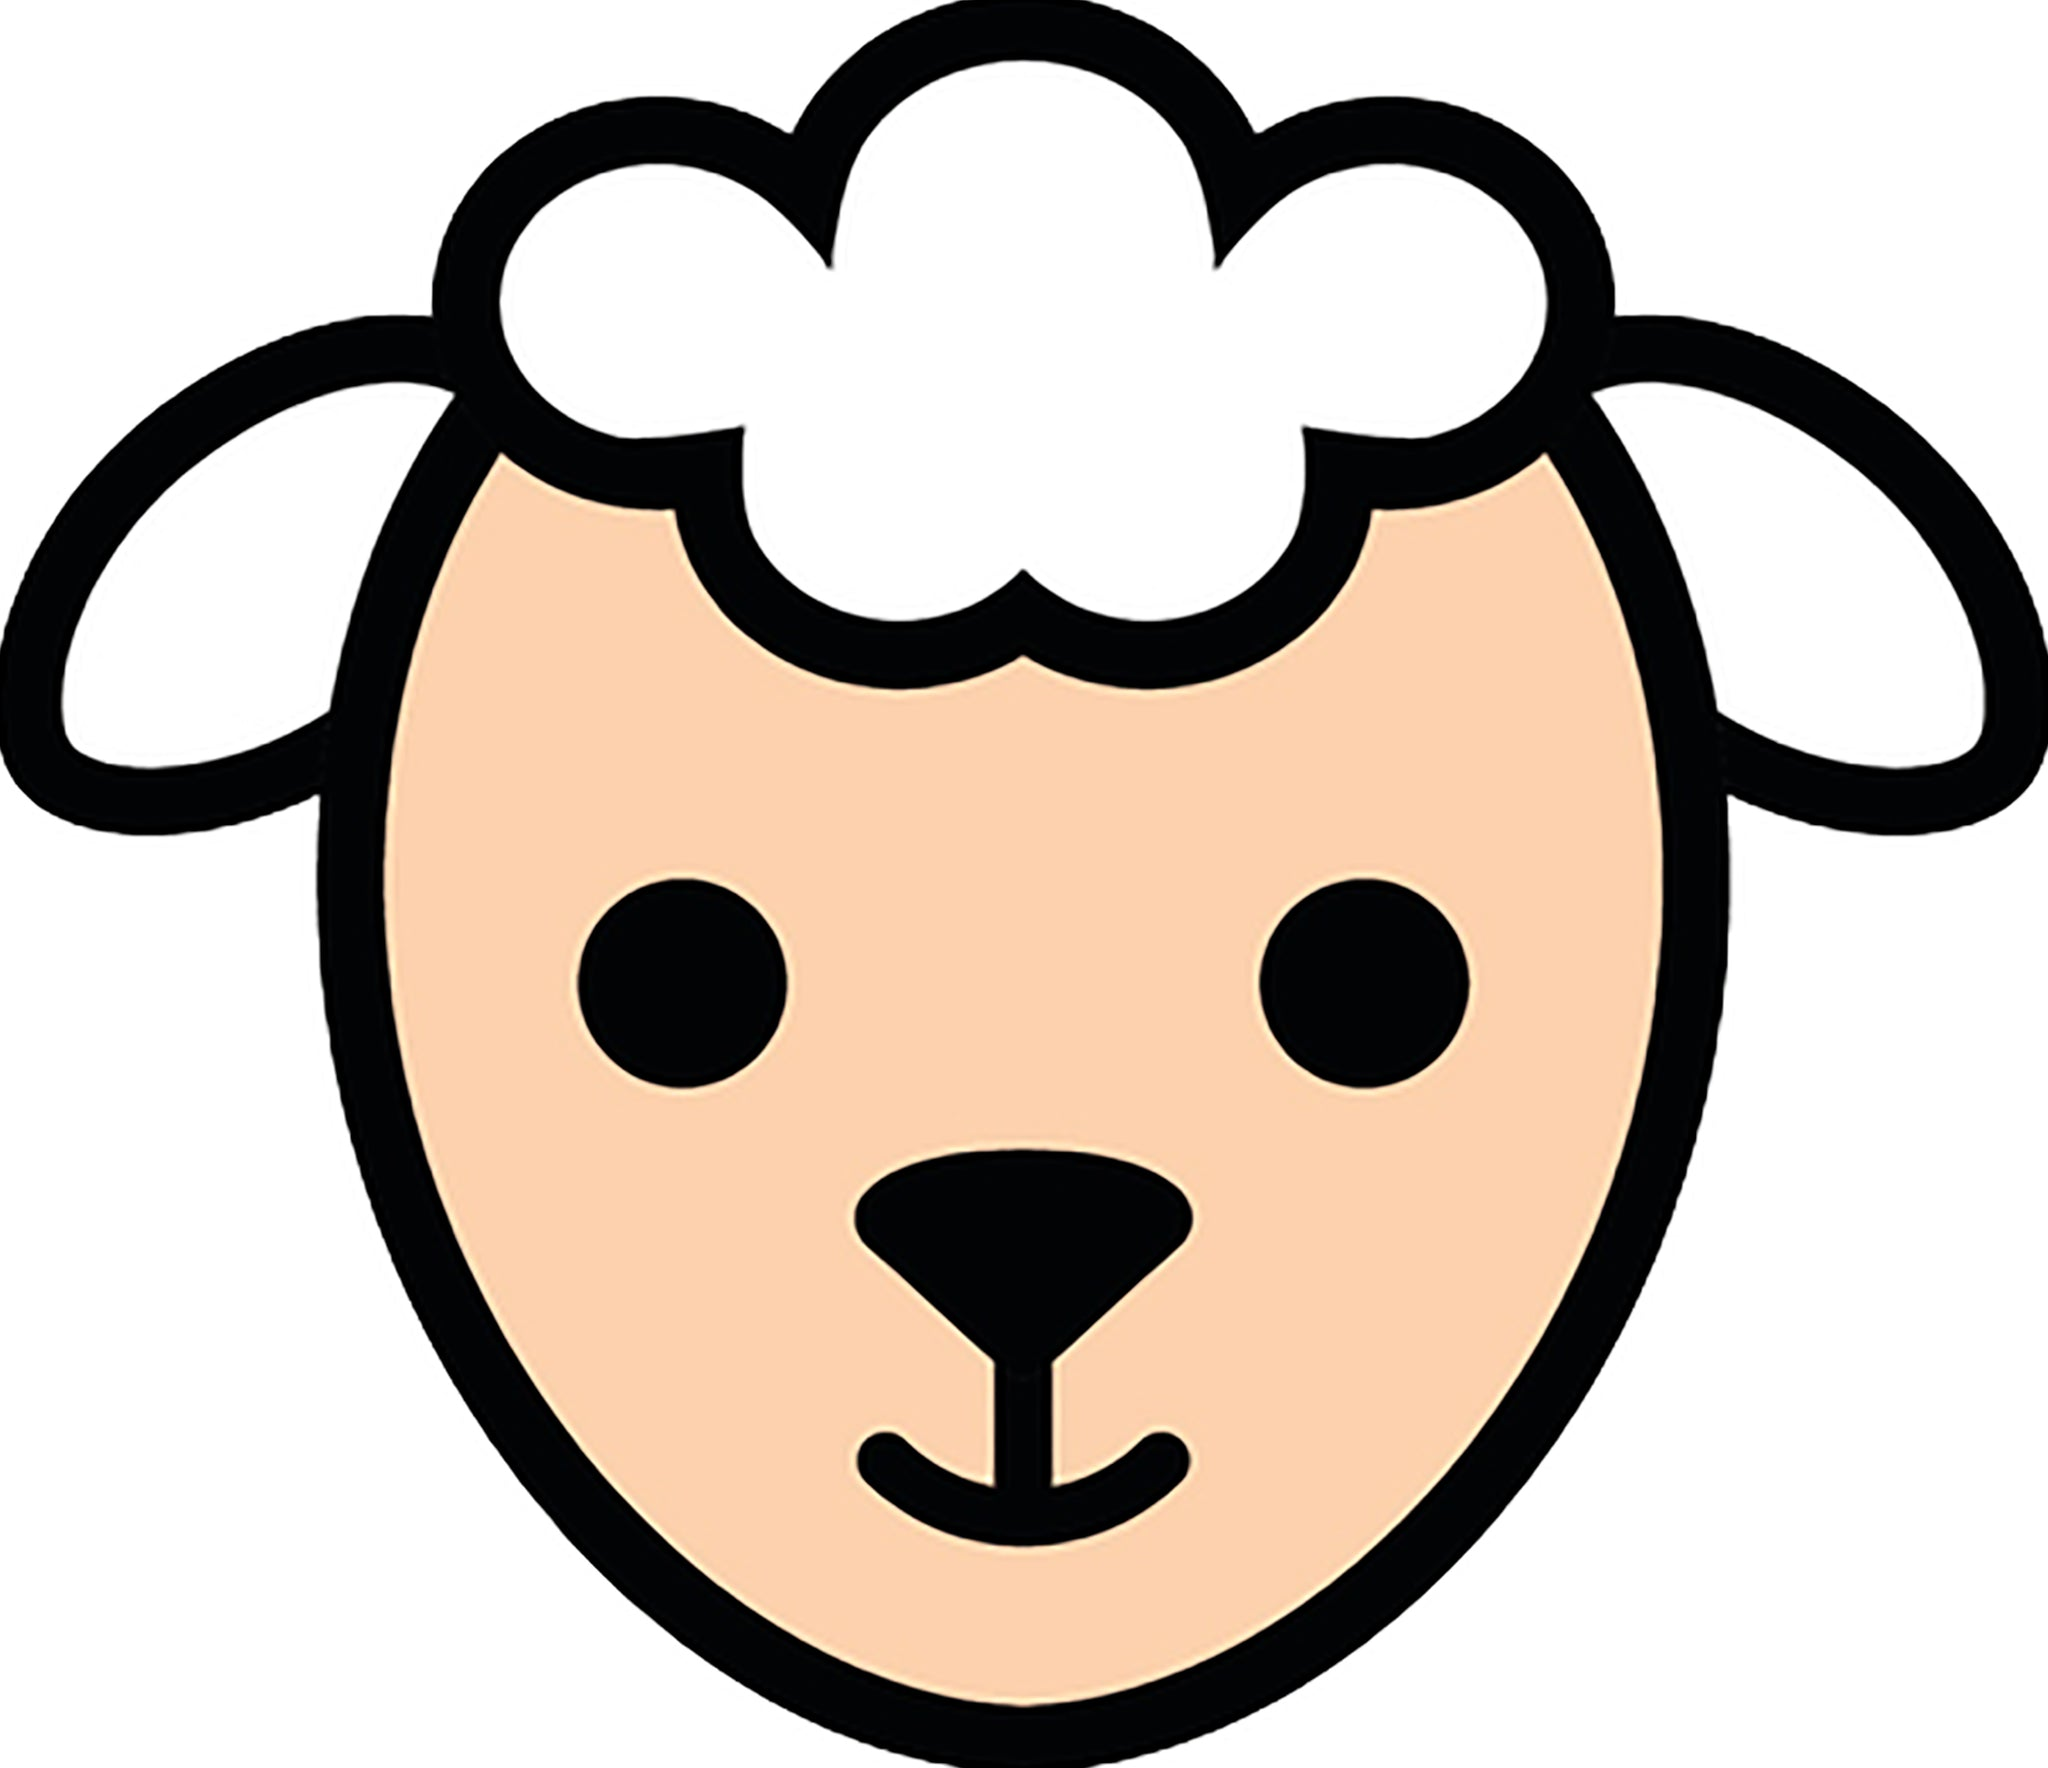 Cute Little Lamb and Lamb Chop Meat Steak Cartoon Emoji #1 Vinyl Decal Sticker